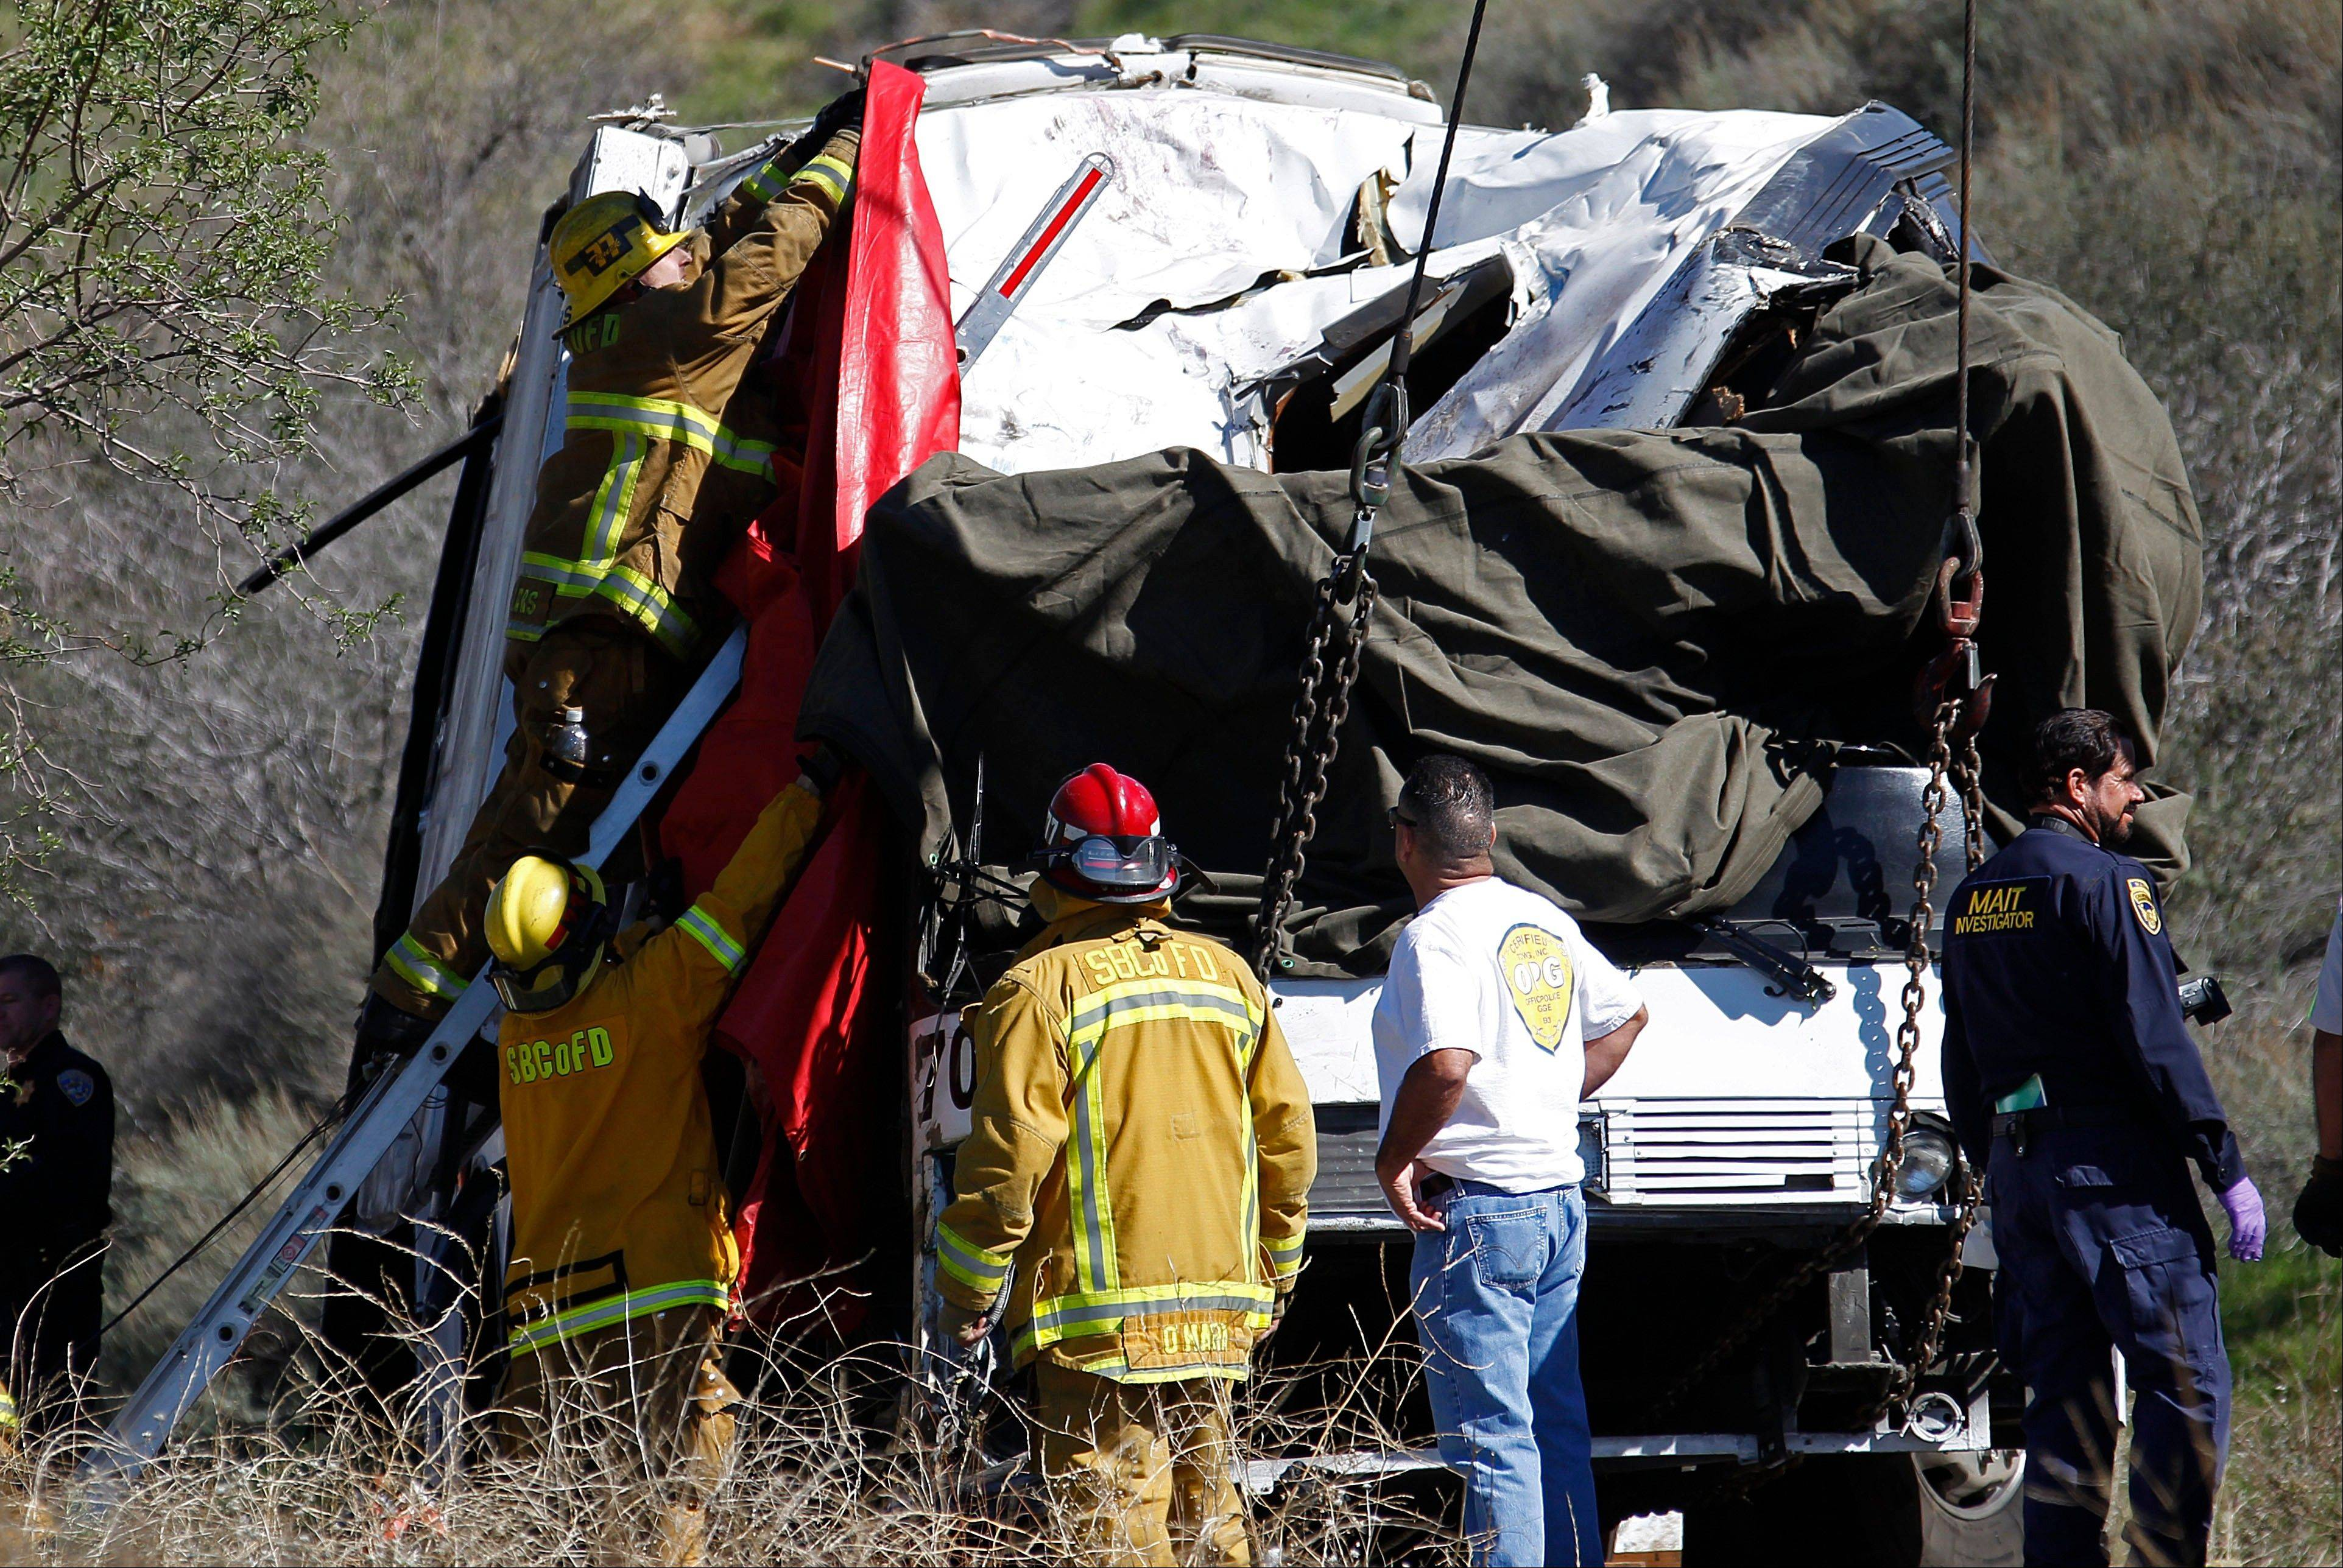 A firefighter adjusts a tarp to cover a victim inside after a tow truck lifted a tour bus back onto the road Monday, Feb. 4, 2013, after it collided with two other vehicles and crashed Sunday, killing at least eight people and injuring 38, on Highway 38 just north of Yucaipa, Calif. The bus was carrying a tour group from Tijuana, Mexico.